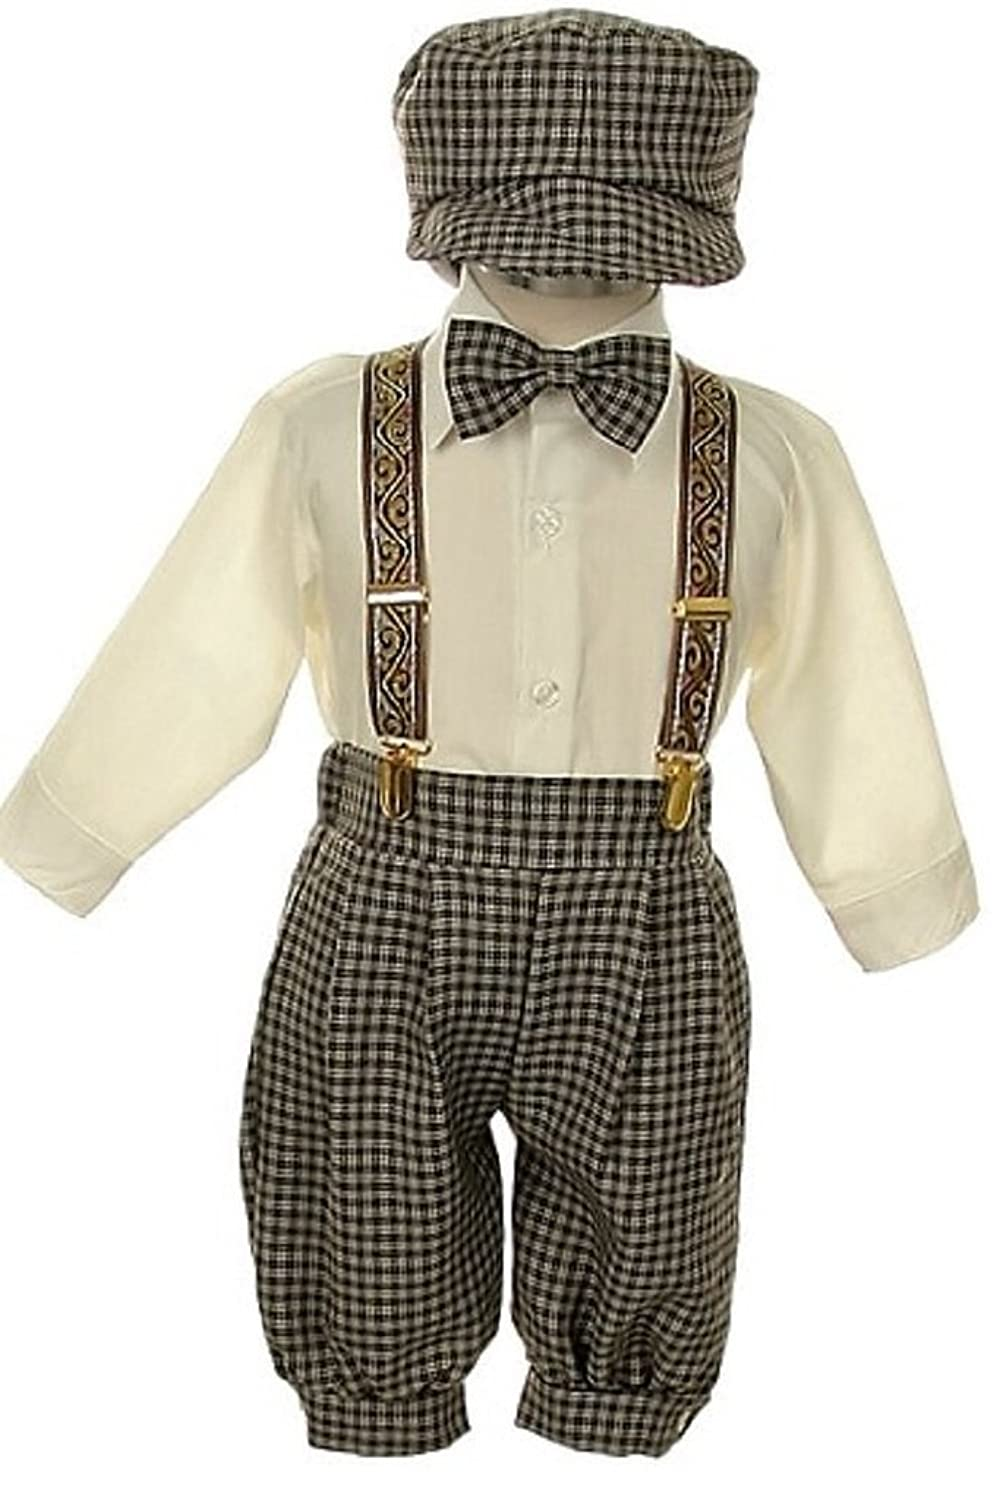 65c3e5afd6e37 Vintage Style Children's Clothing: Girls, Boys, Baby, Toddler